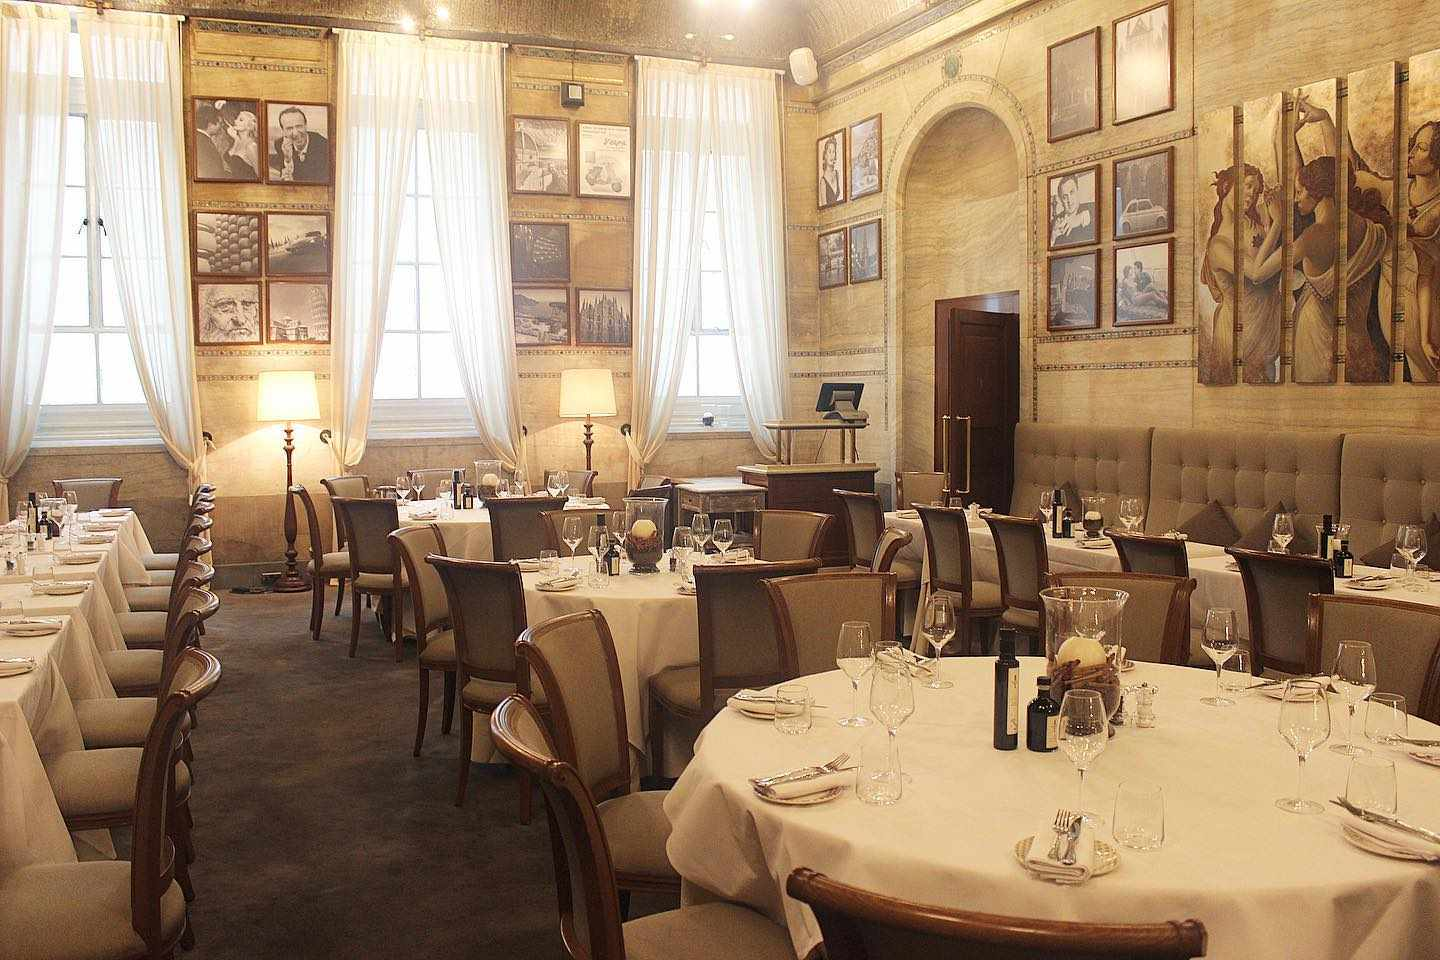 Historic Cream and white private dining room at Ristorante Granaio with old photos on the wall